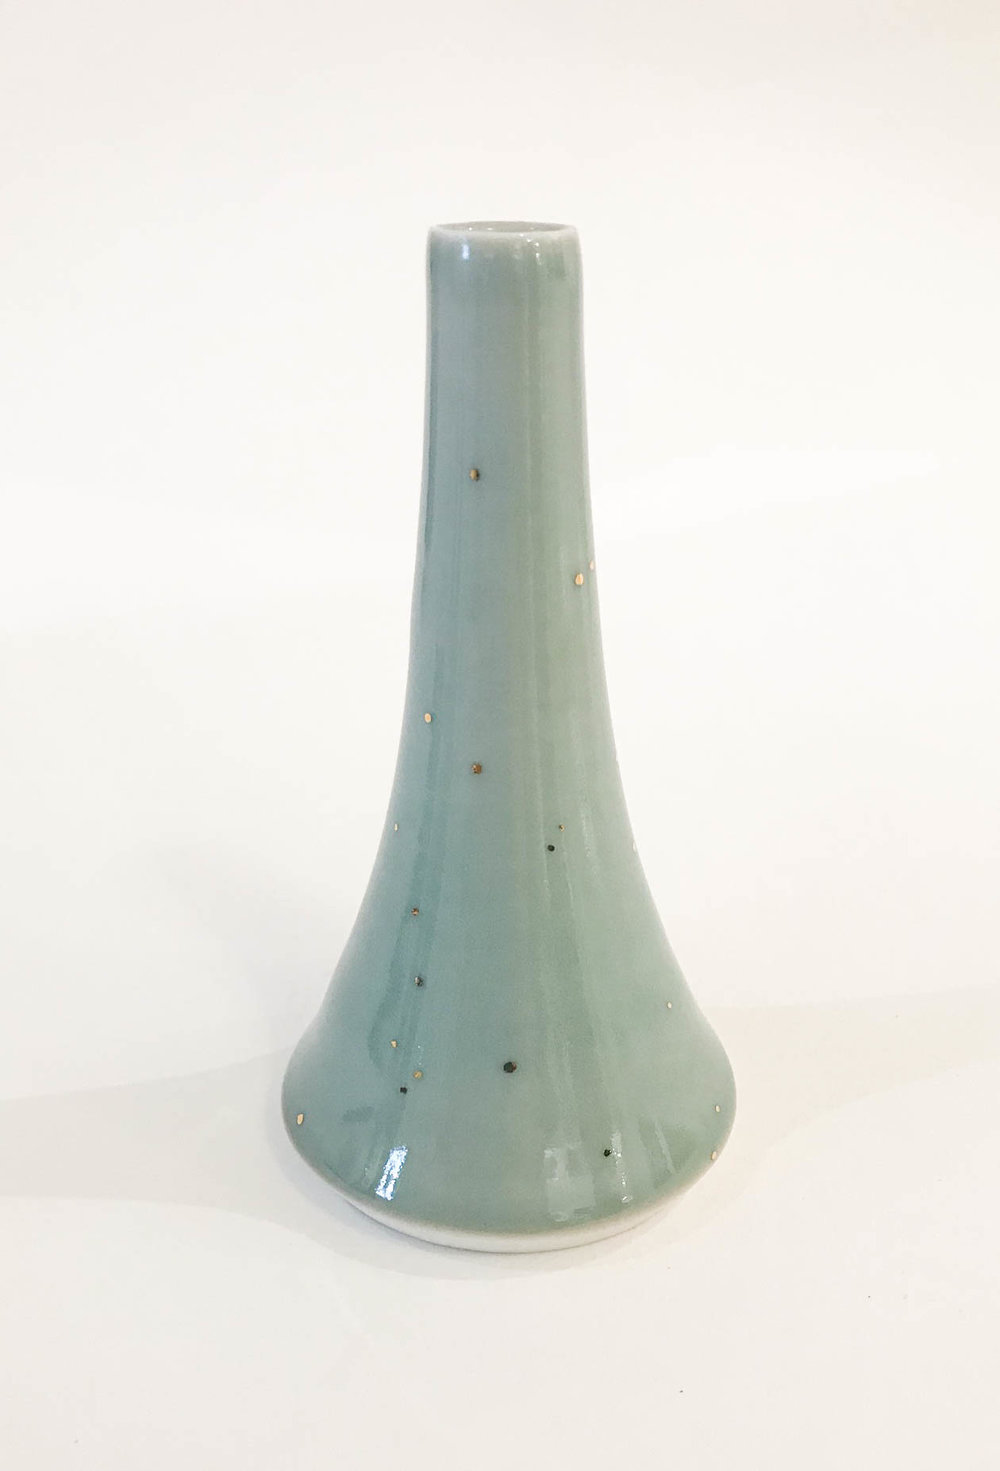 "Small Volcano Vase, wheel-thrown porcelain, celadon with gold luster speckle, 4 1/2"" x 2 3/4"", $110"